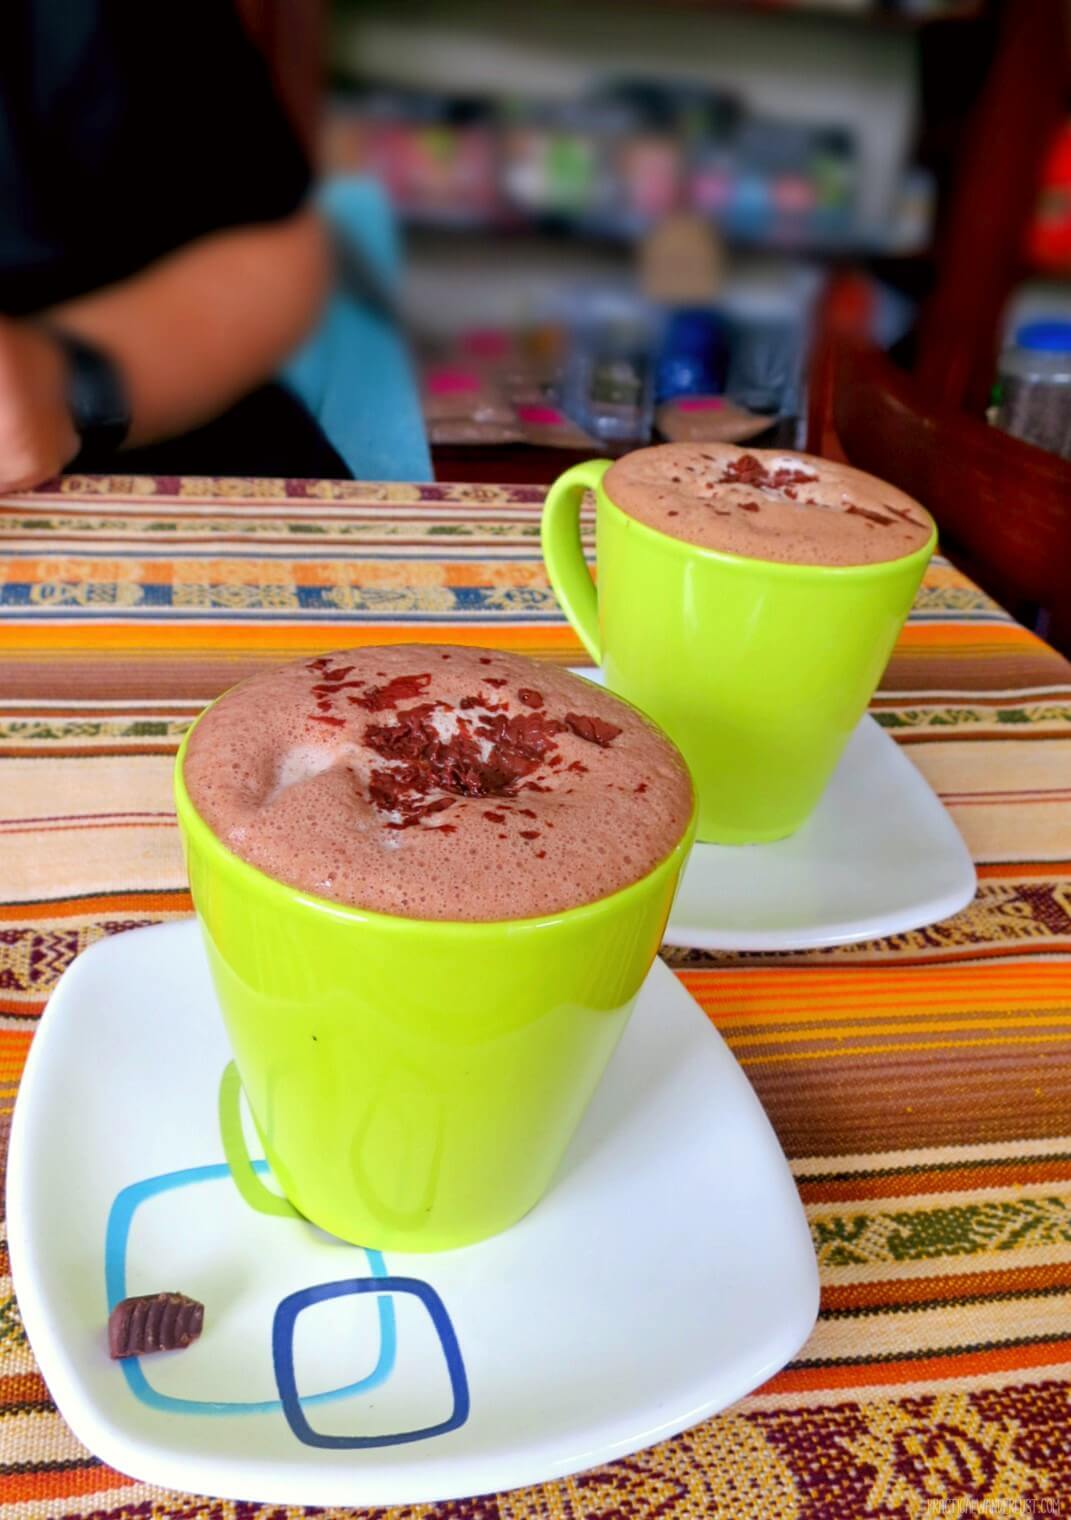 Delectable hot chocolate from Amore in Banos, Ecuador